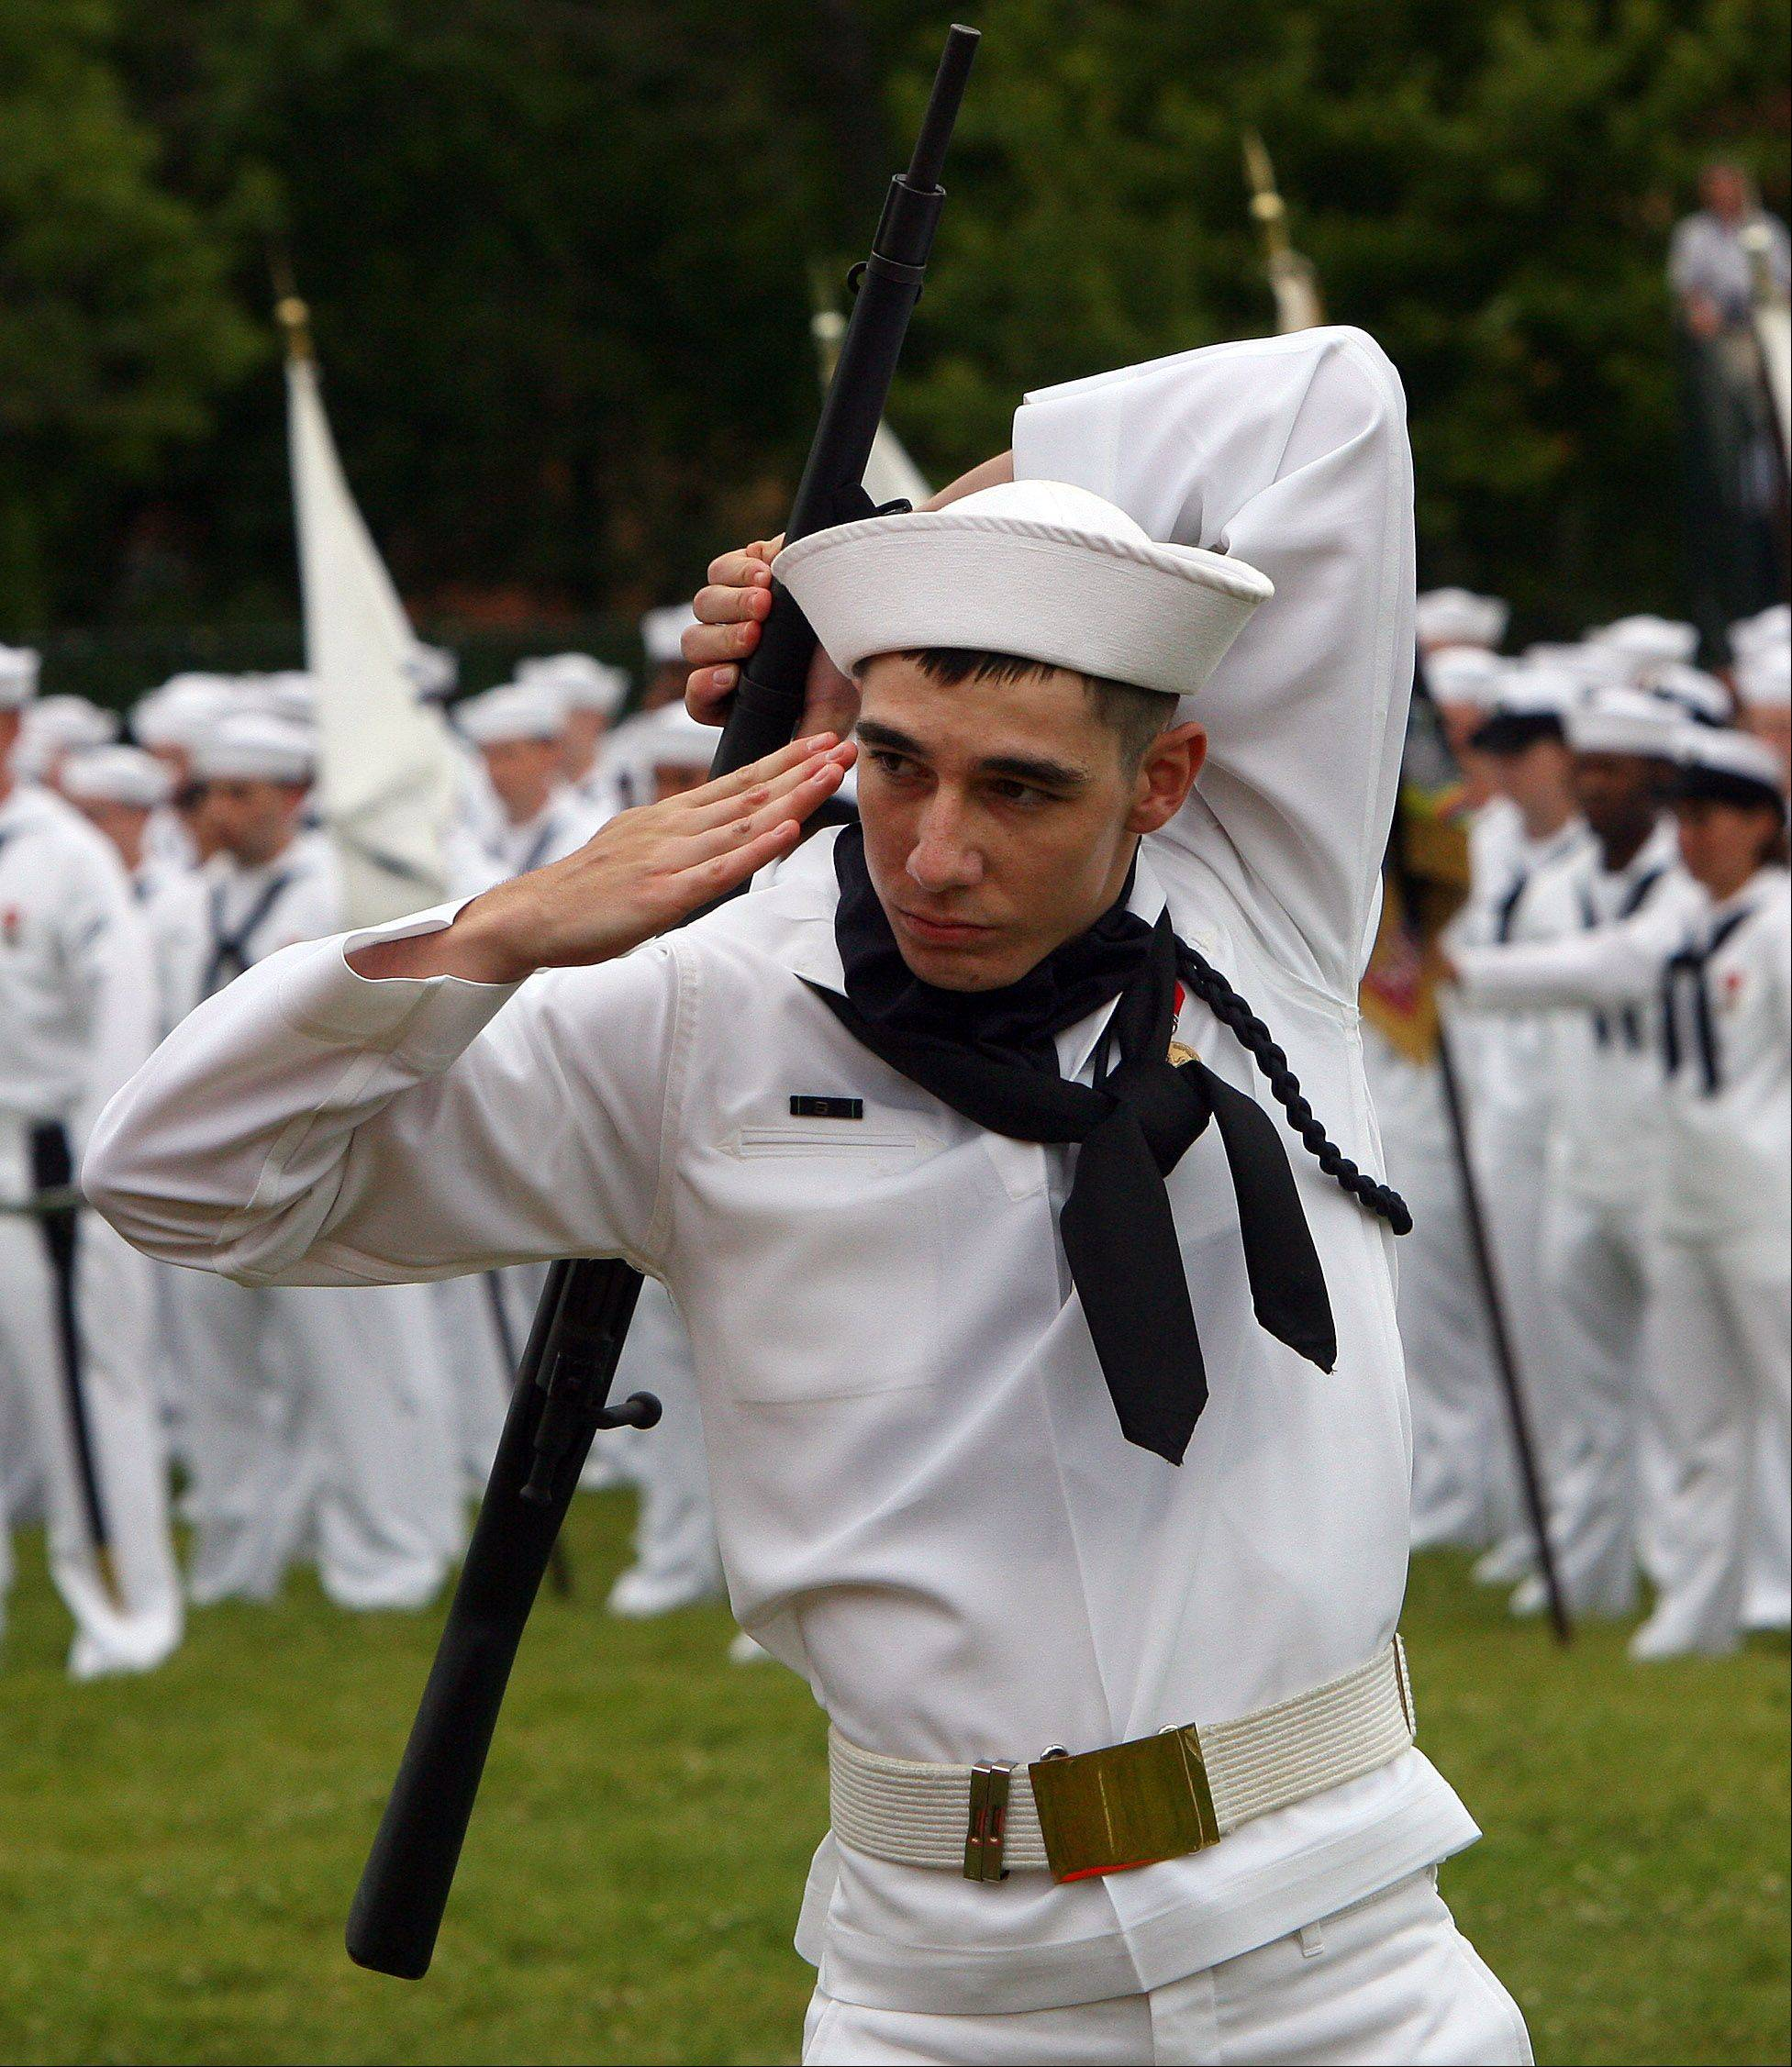 A recruit performs with a show rifle as Great Lakes Naval Station held a rededication ceremony while graduating about 1,000 recruits on its 100th anniversary.